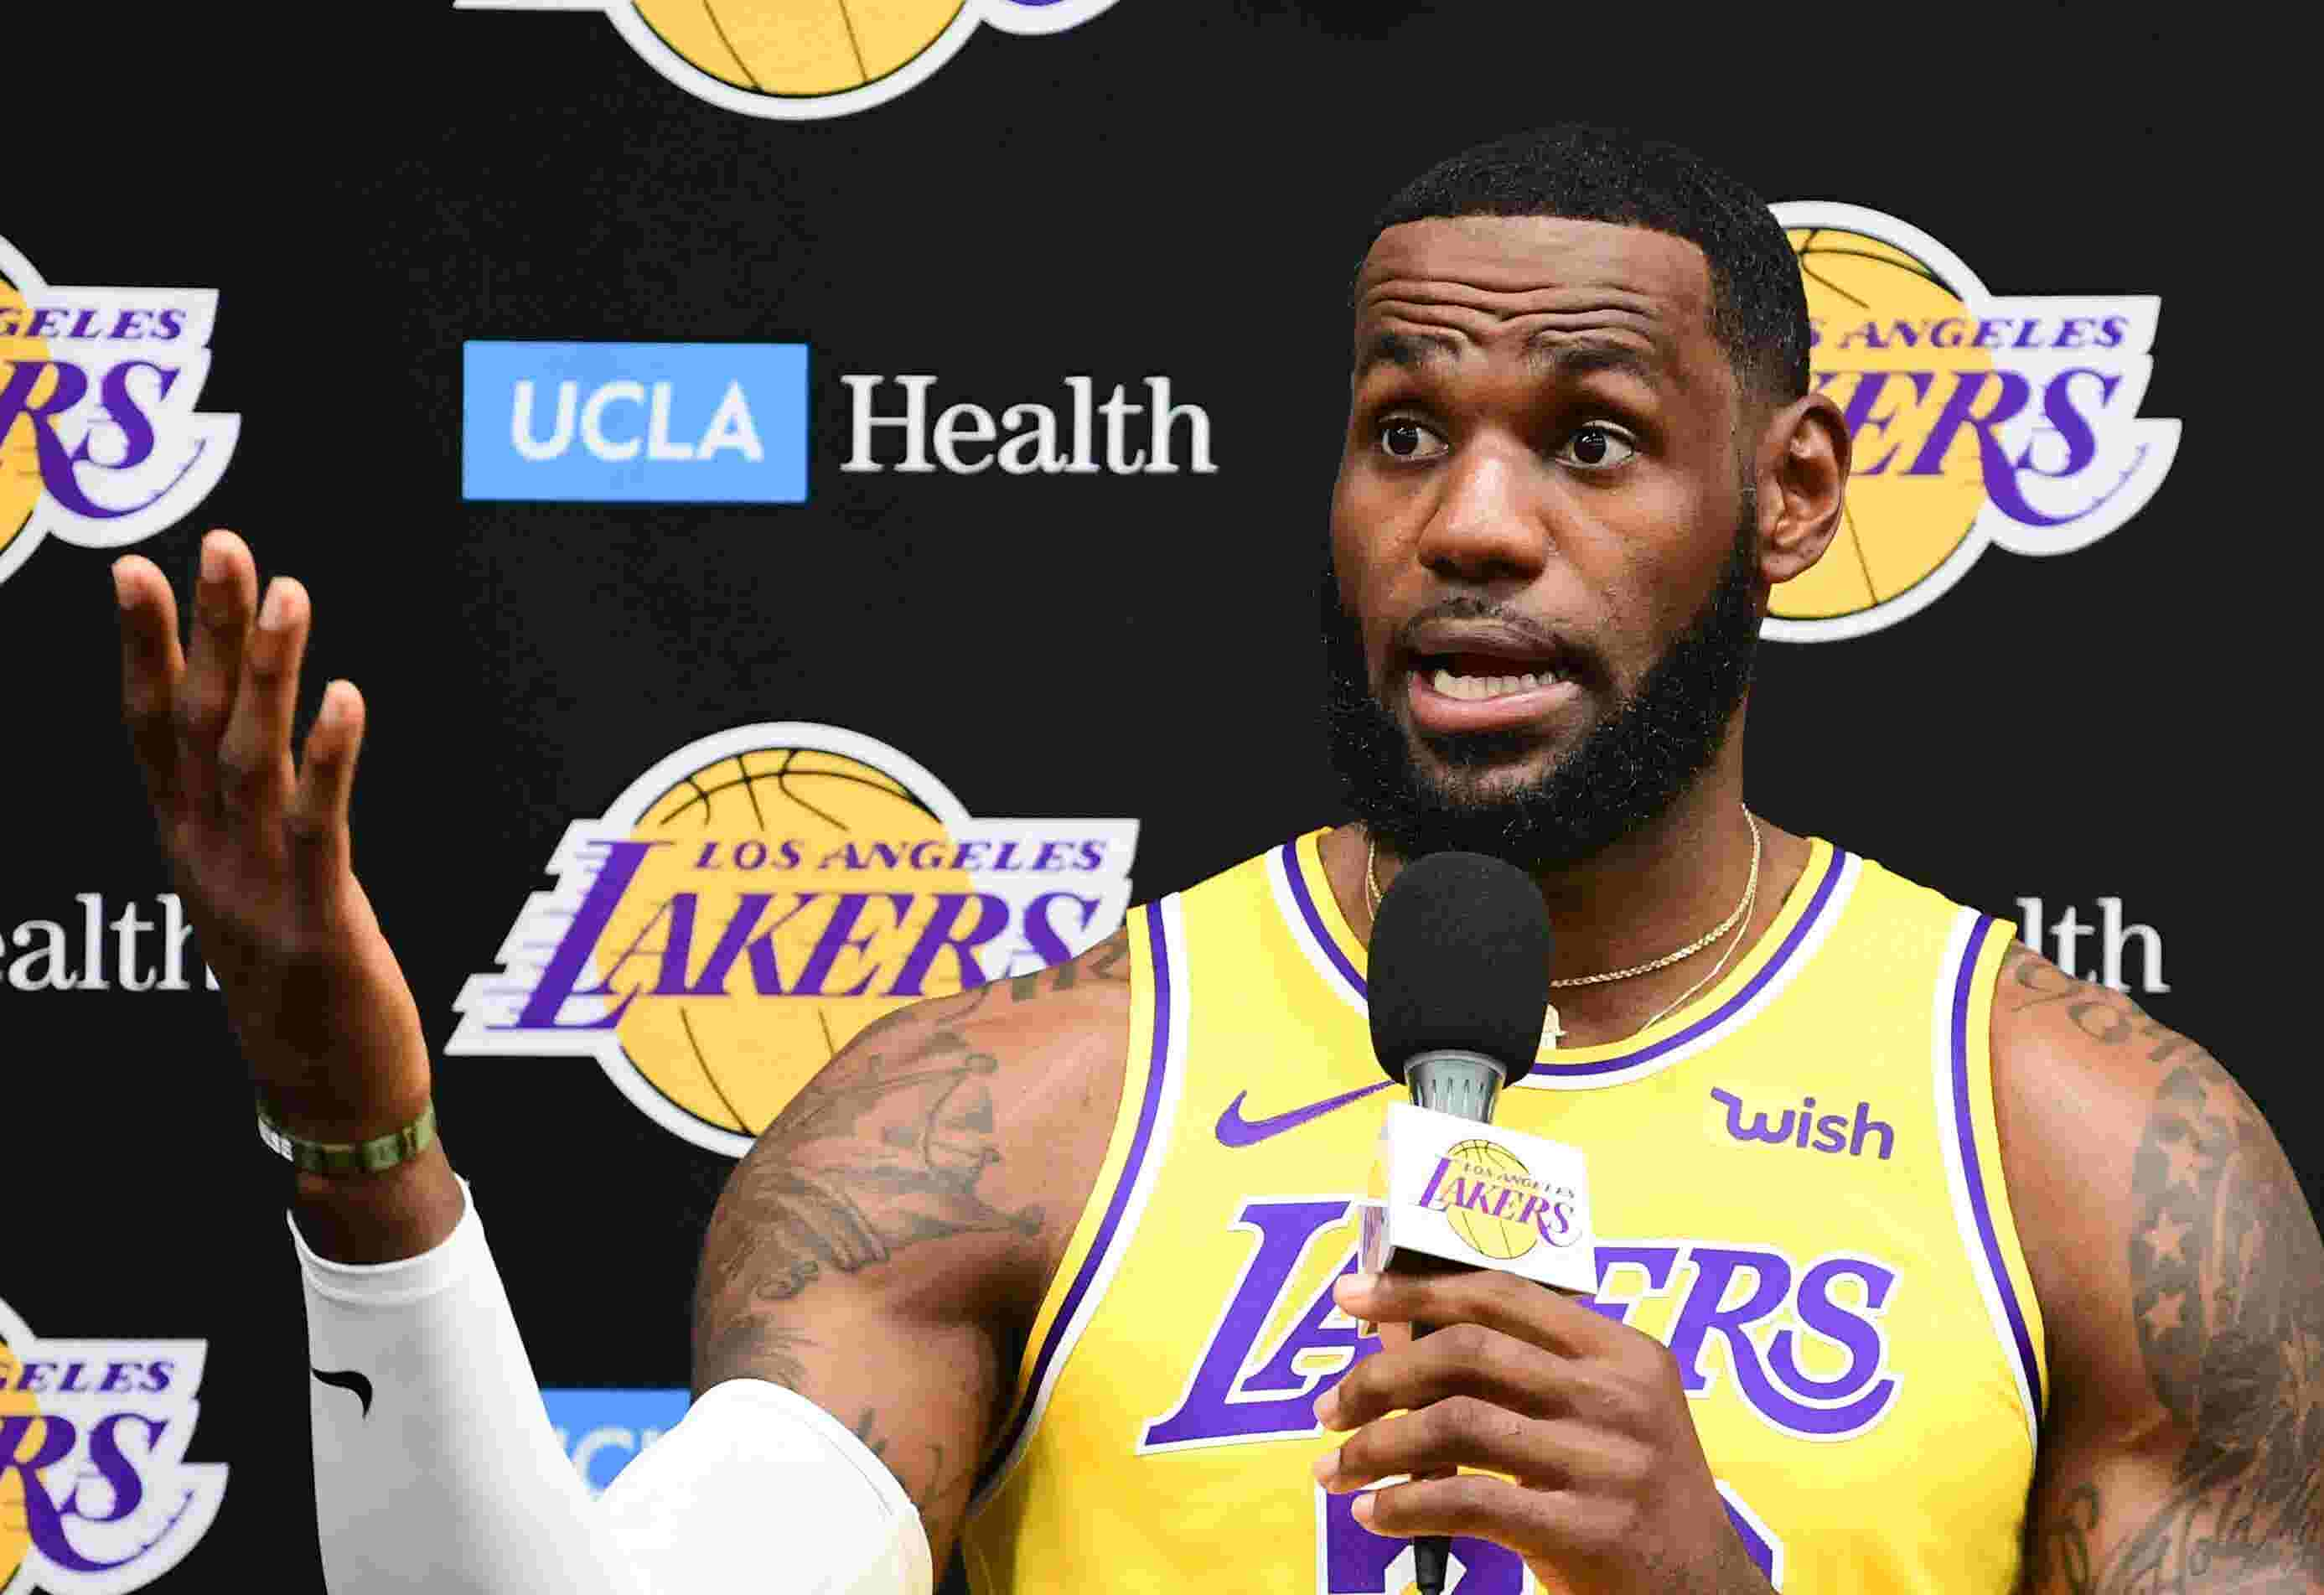 Dear LeBron James: You either believe in social justice or you don't